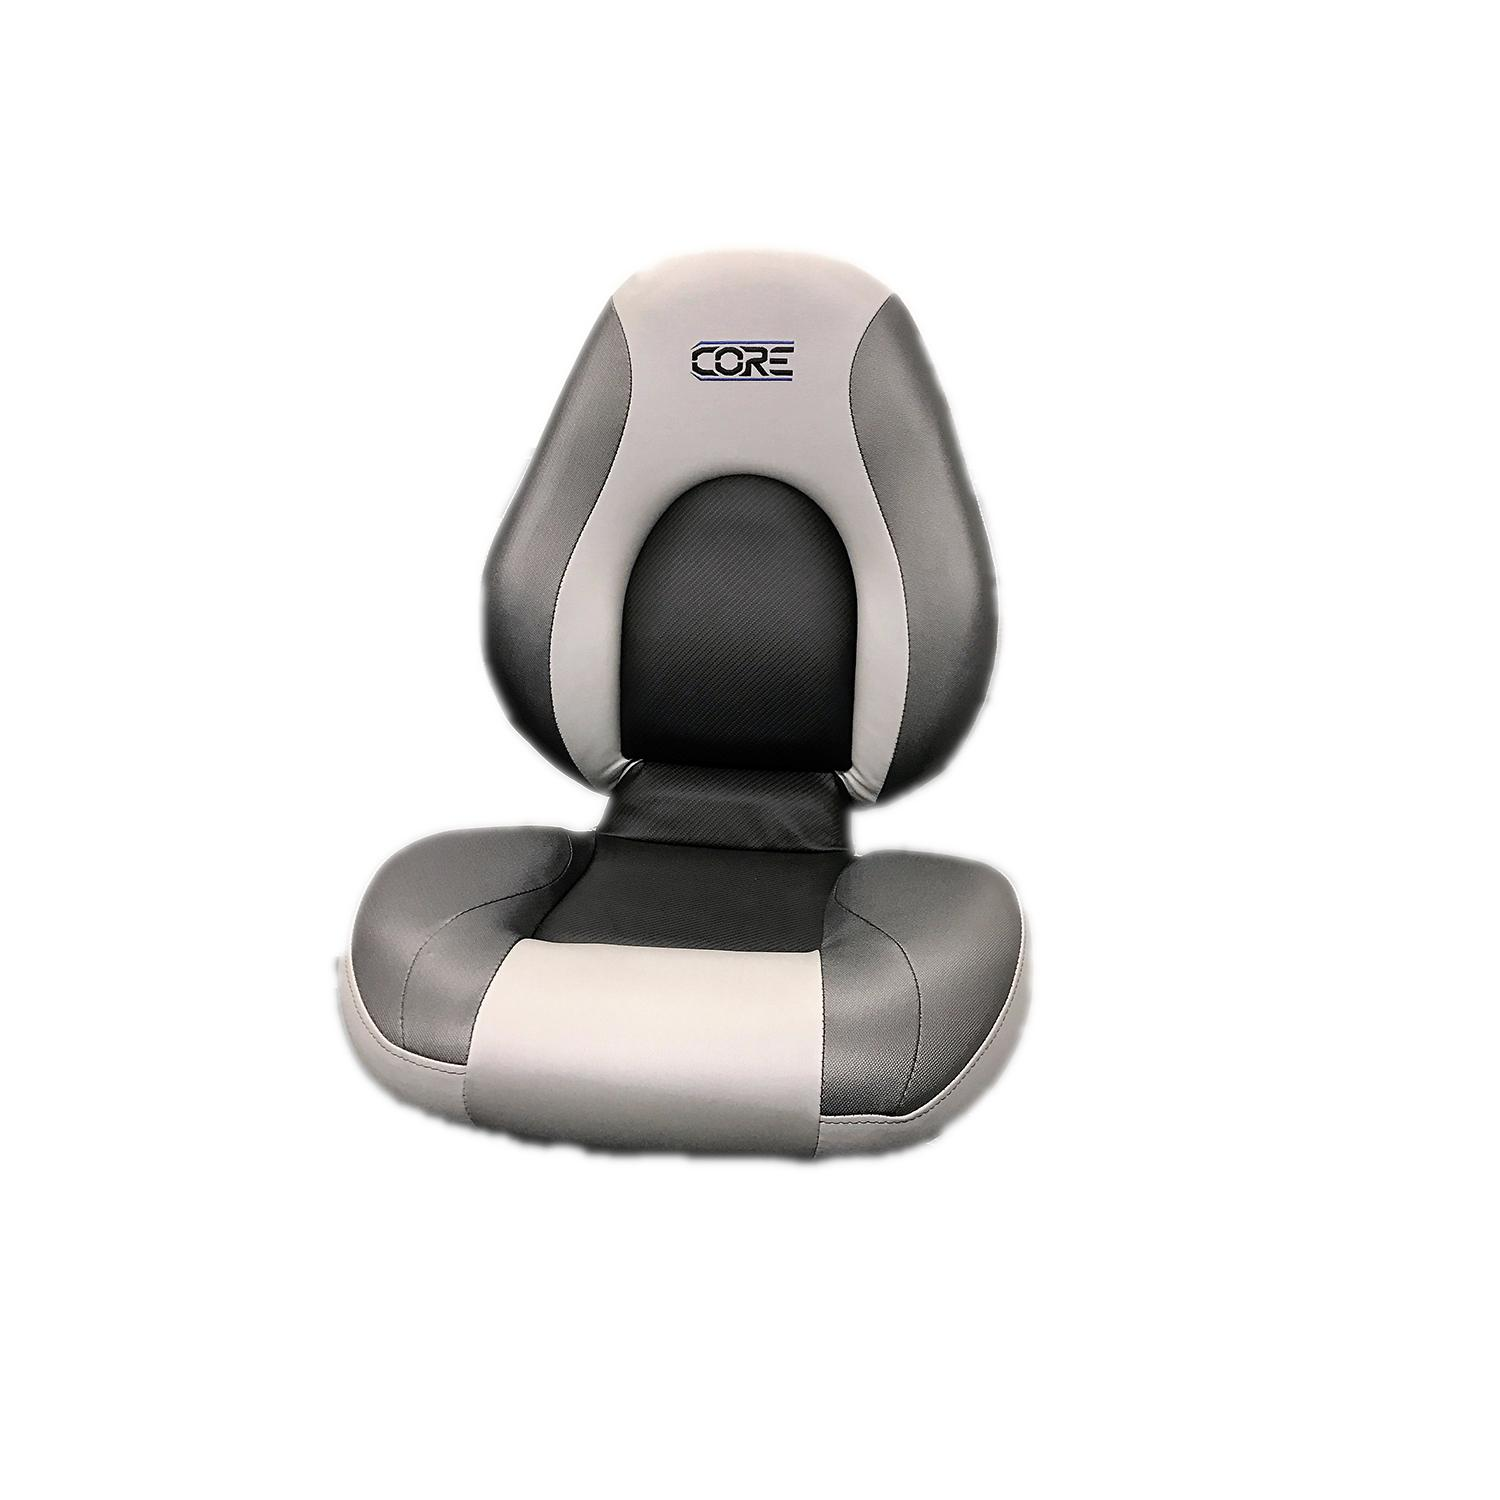 CORE ICE Centric Boat Seat